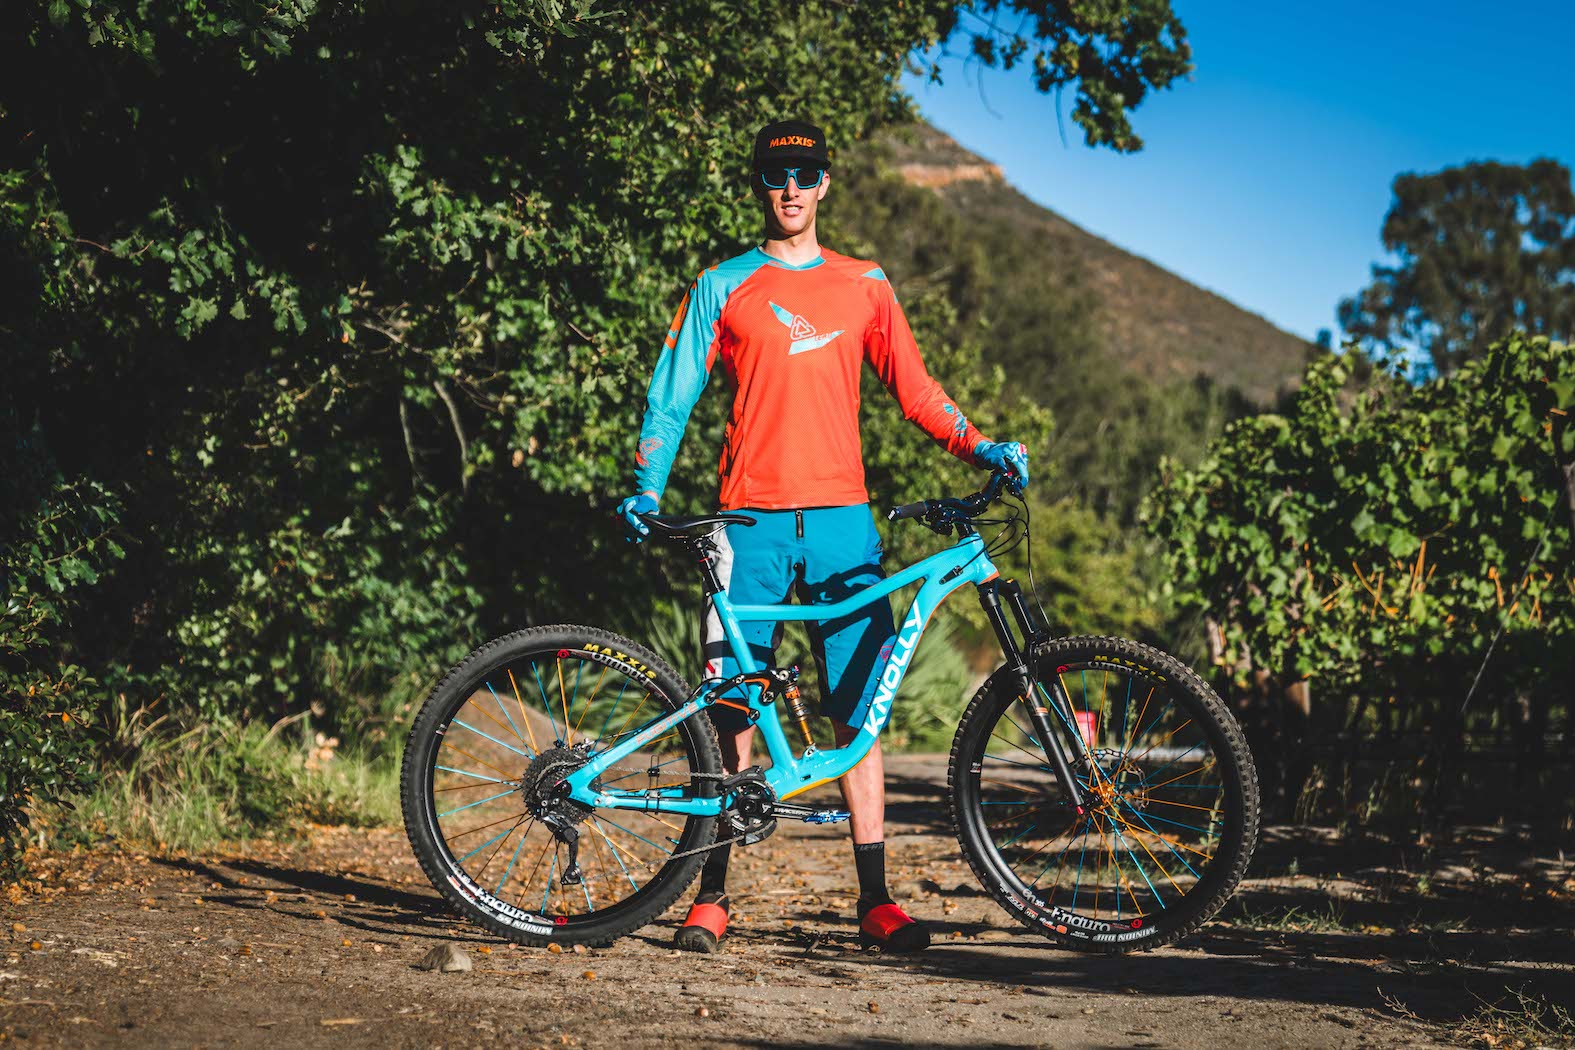 Martin Zietsman with his 2018 Pre-Production Knolly Fugitive